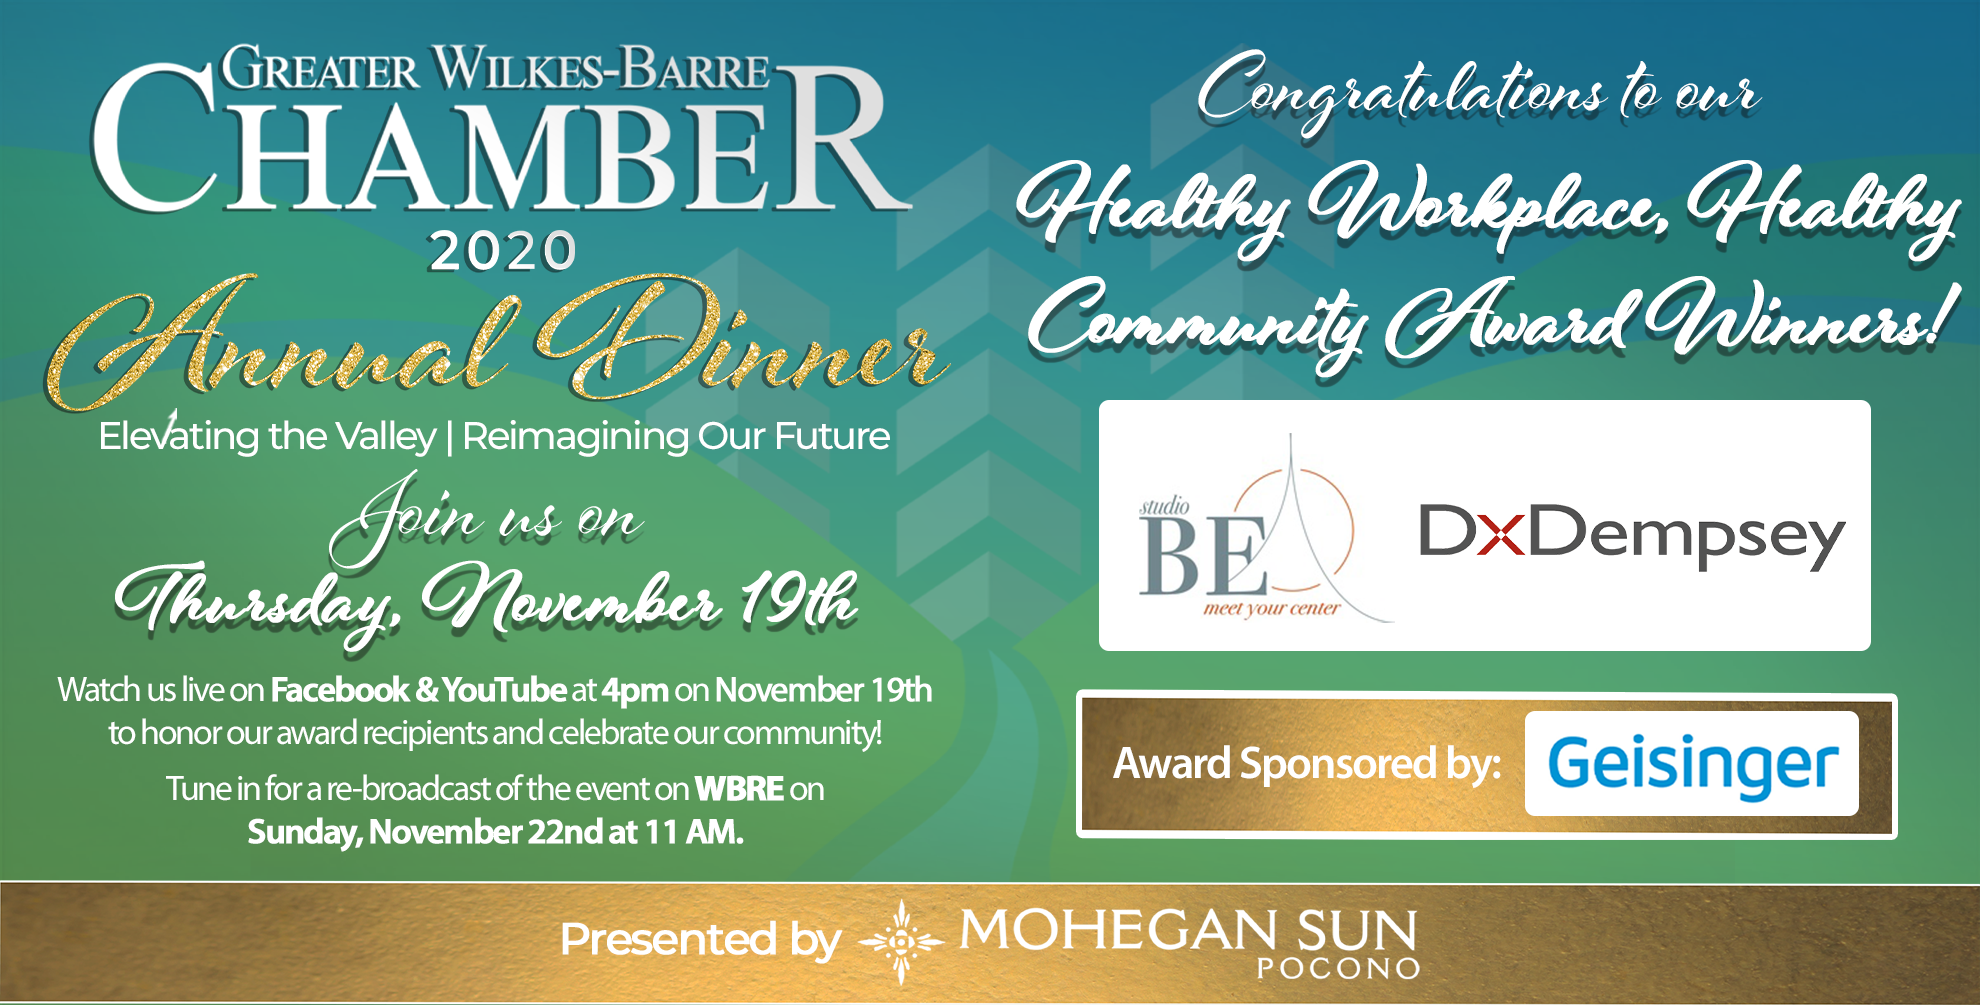 Meet Our 2020 Healthy Workplace, Healthy Community Award Recipients: DxDempsey & studio BE